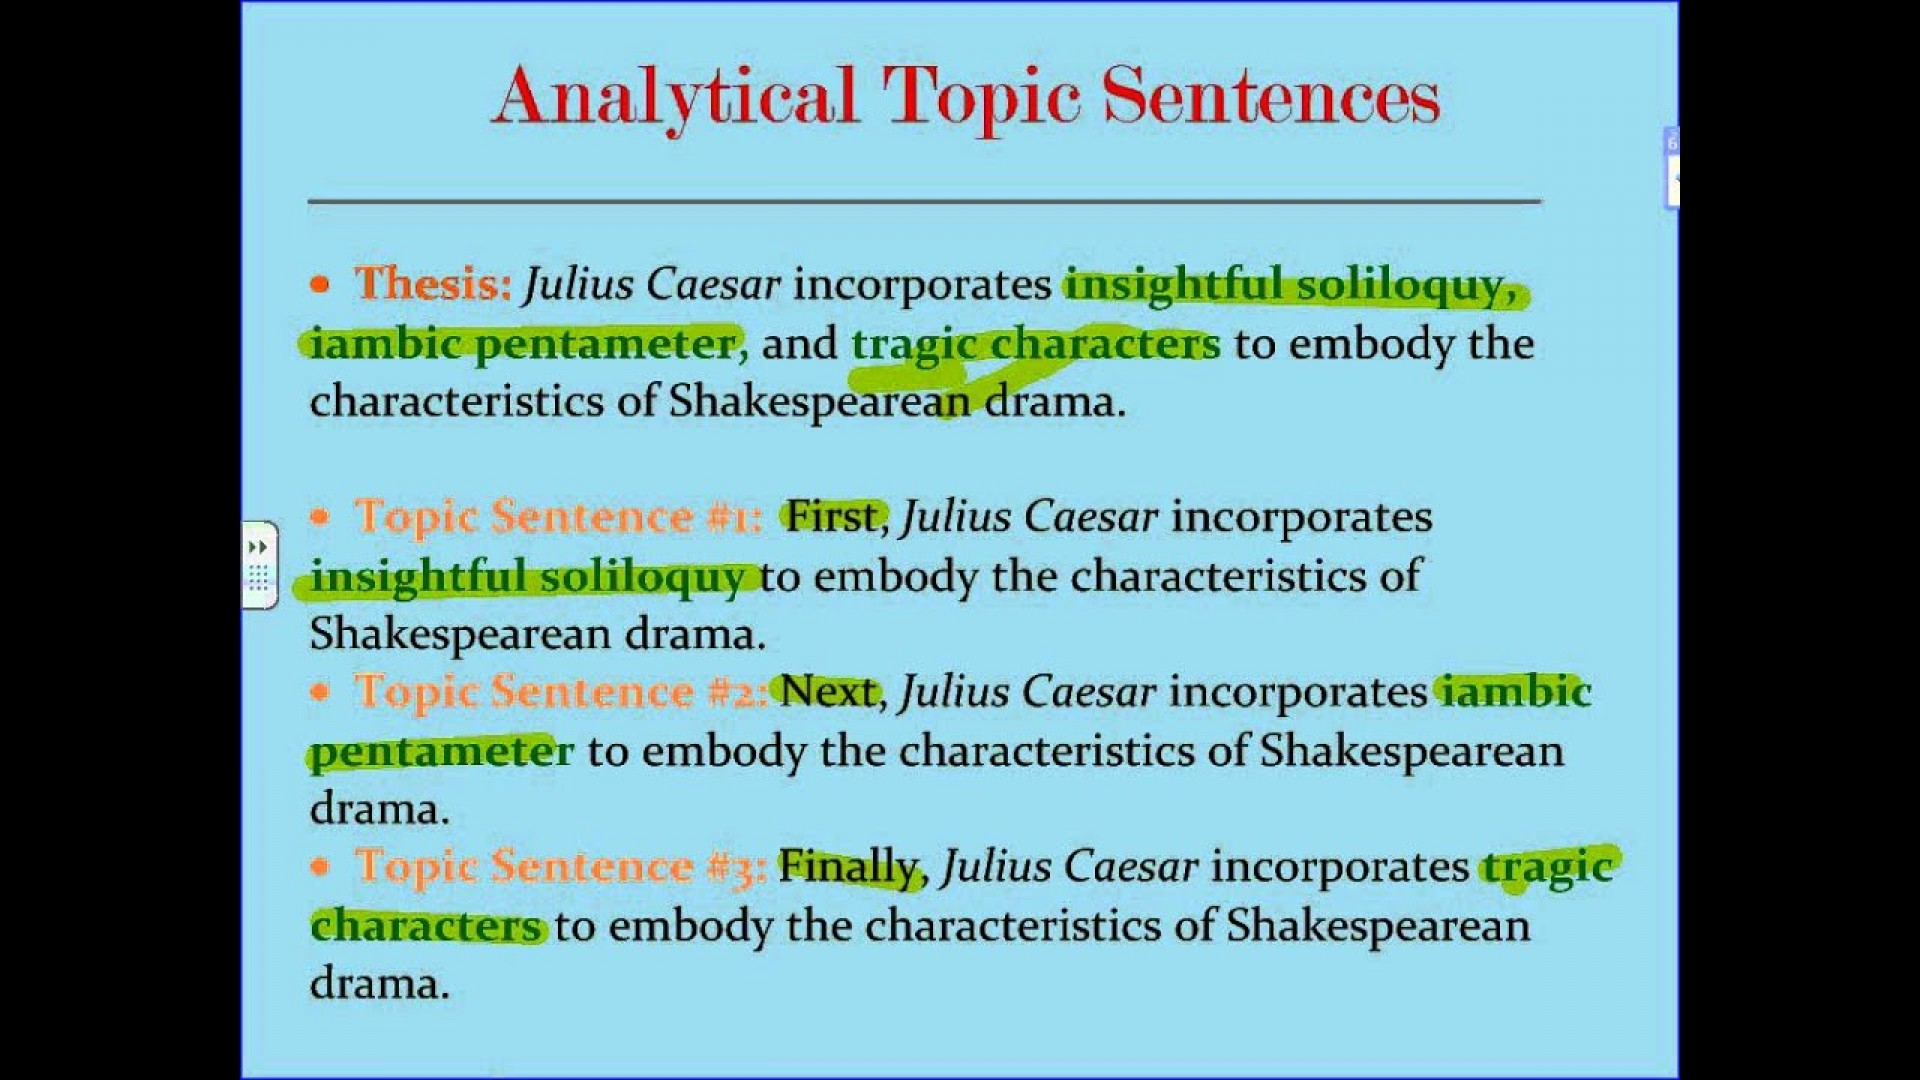 001 Maxresdefault Essay Example Topic Stirring Sentence Sentences Outline Writing Thesis Statement 1920